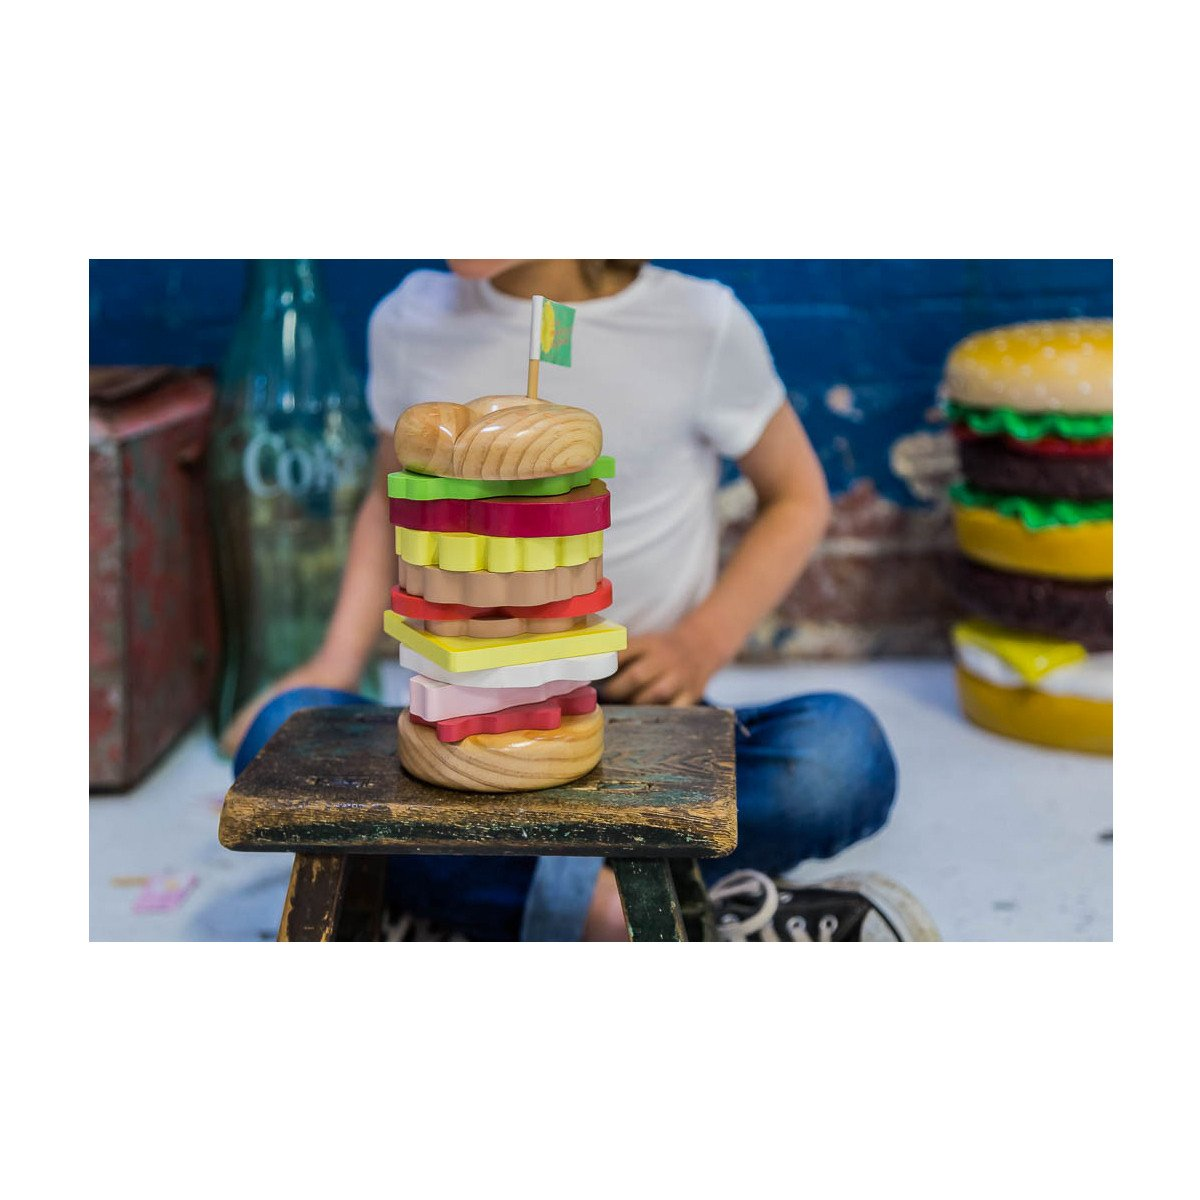 Make Me Iconic Stacking Burger Make Me Iconic Sorting and Stacking Toys at Little Earth Nest Eco Shop